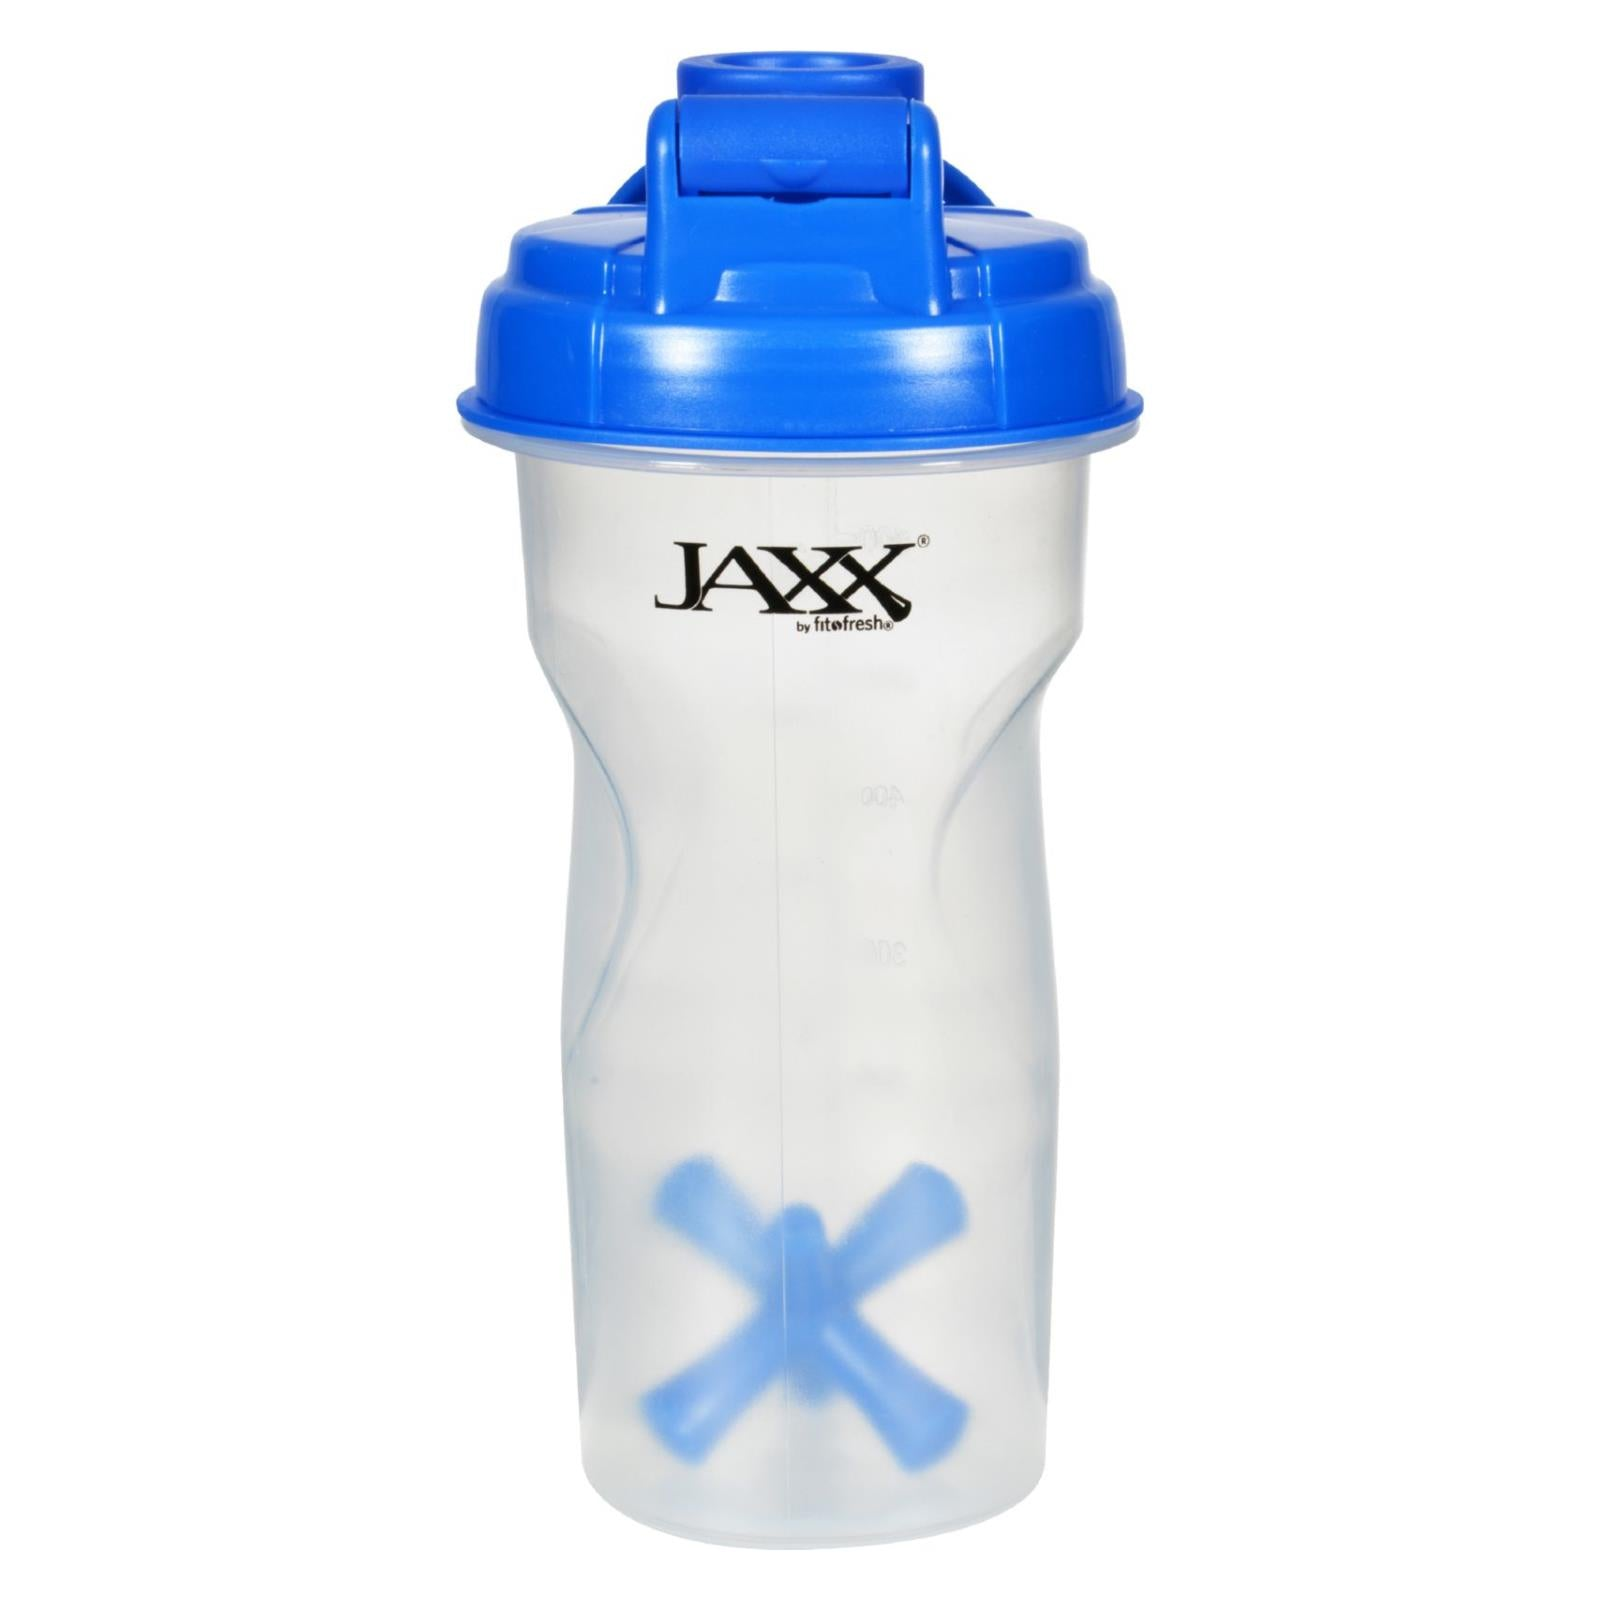 Buy Fit and Fresh Jaxx Shaker - Blue - 28 oz - Shaker Bottles from Veroeco.com